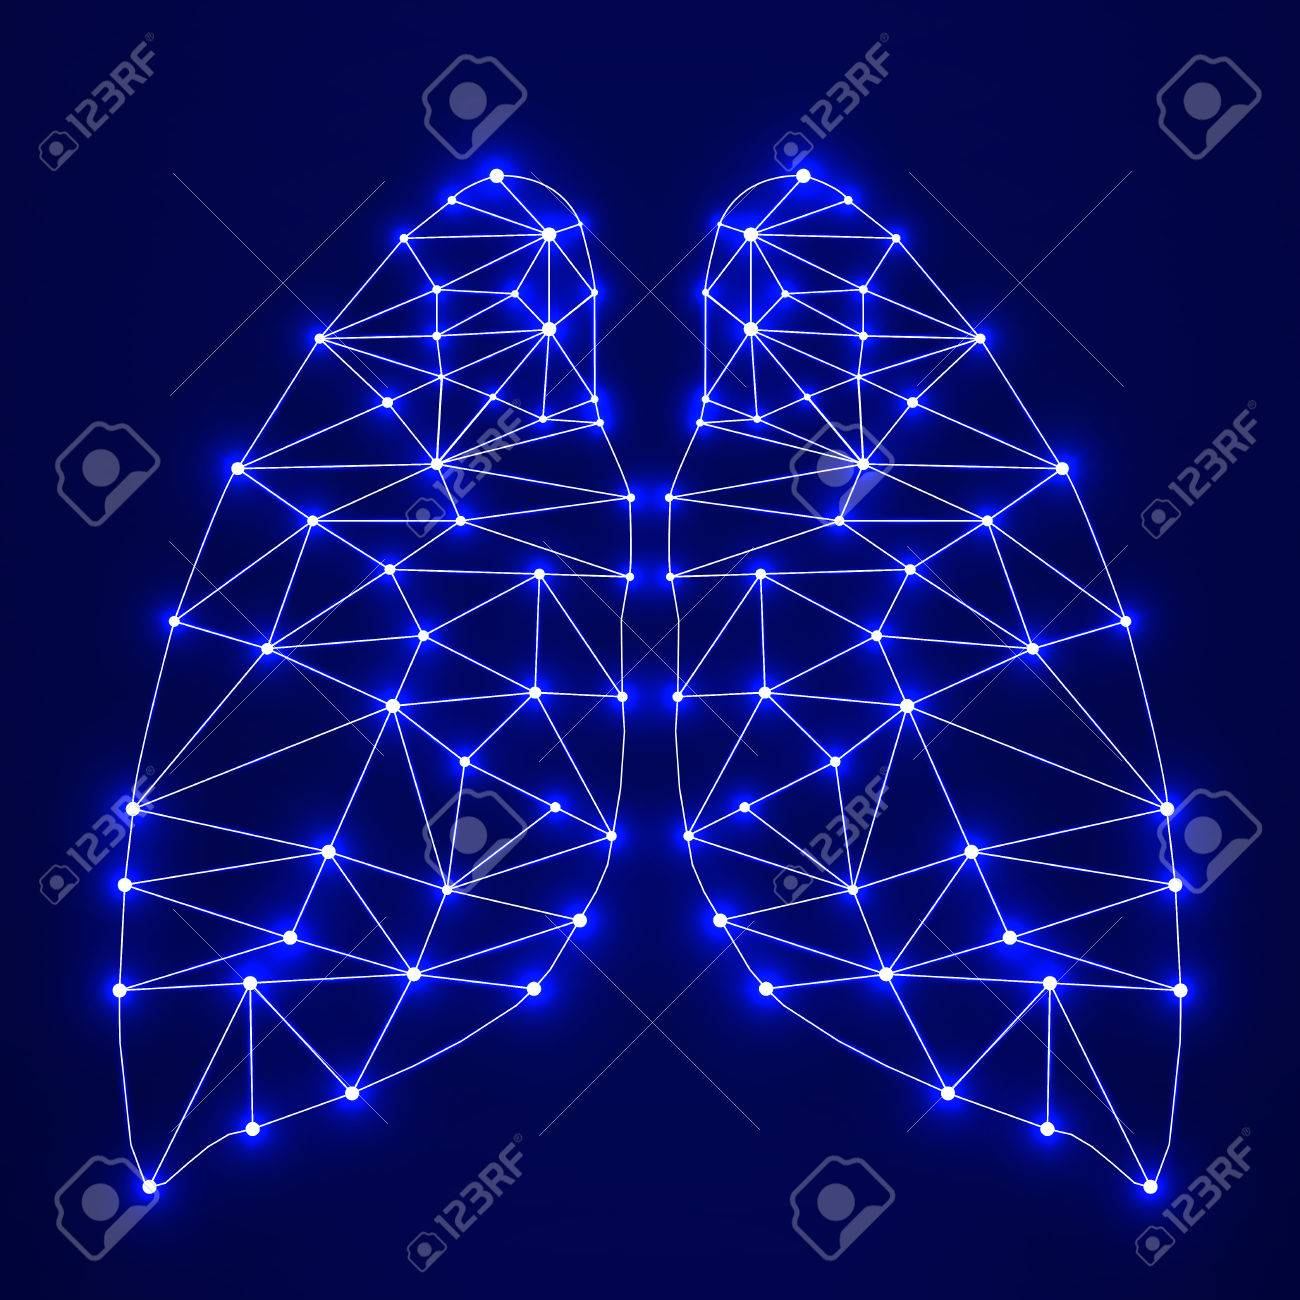 Abstract Human Lung Network Connections Royalty Free Cliparts